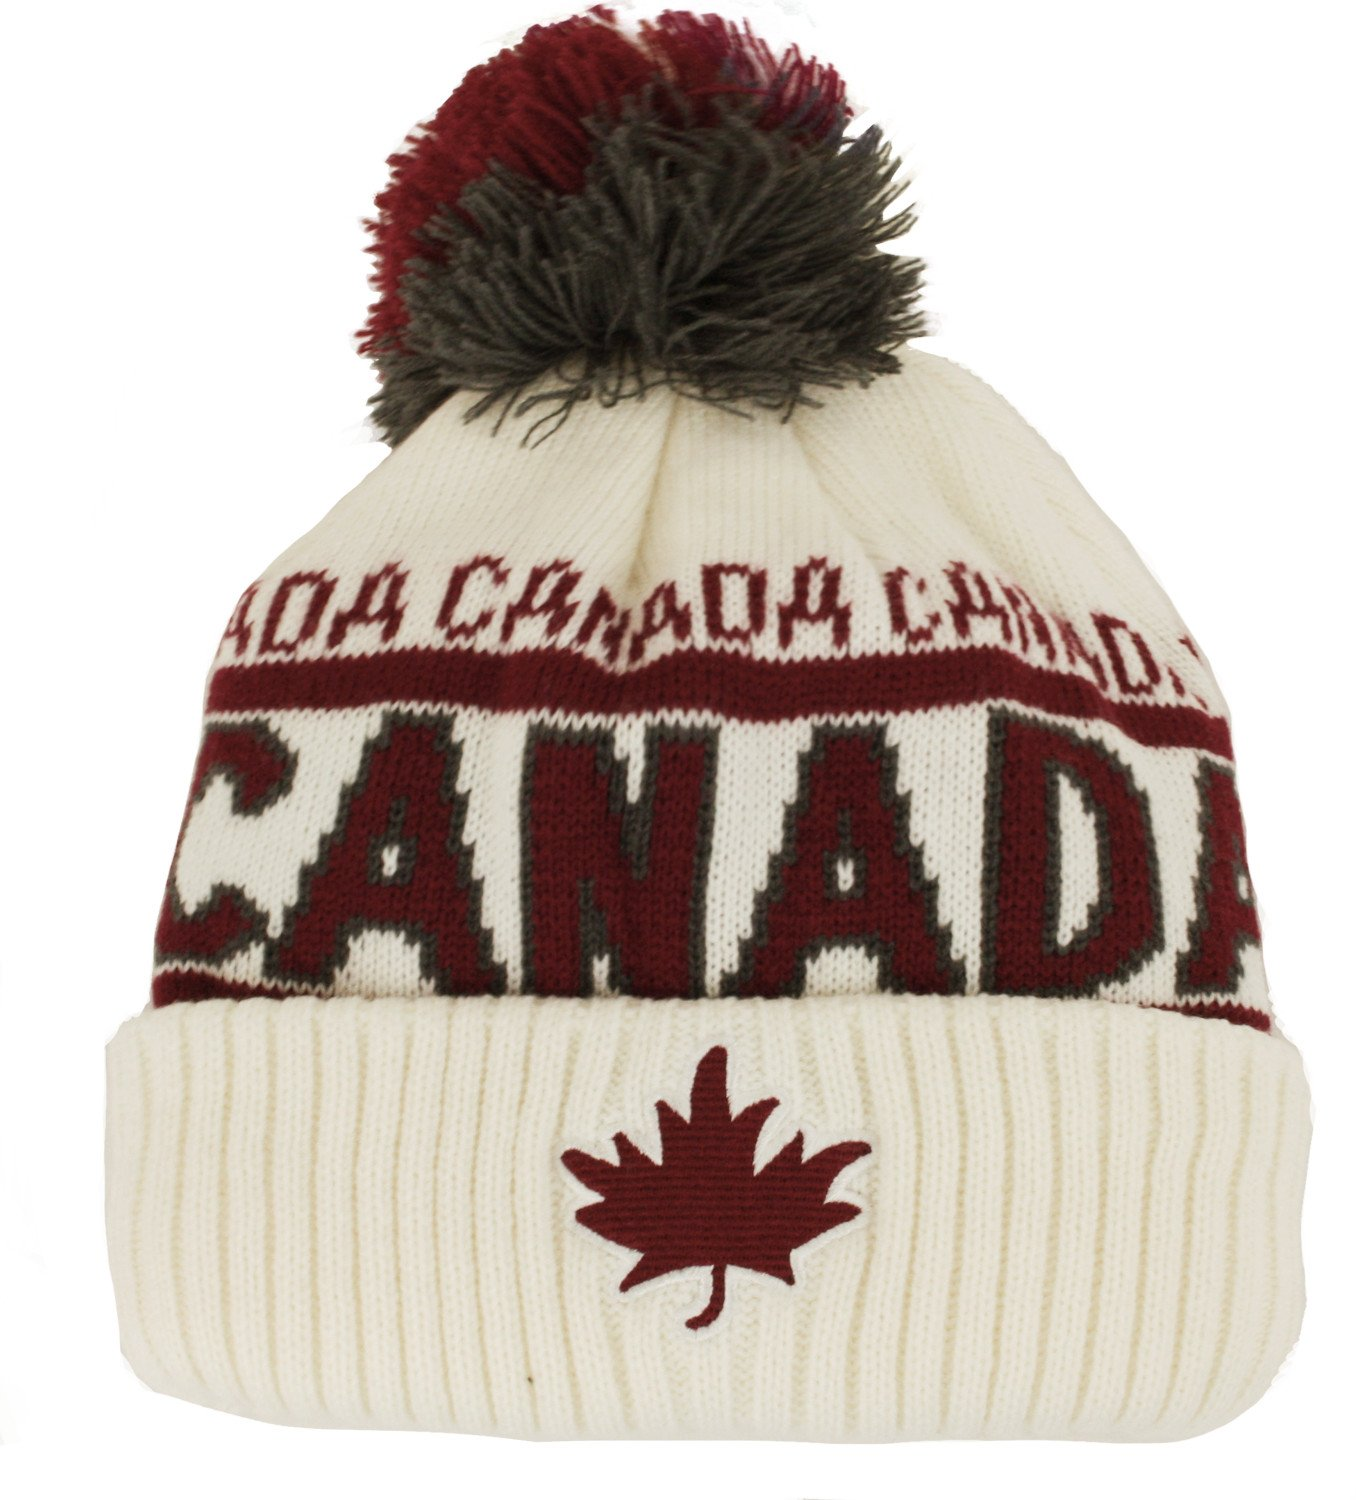 Canada Sport Warm Winter Hat Beanie True North Travel Tuque - Cream White Robin Ruth